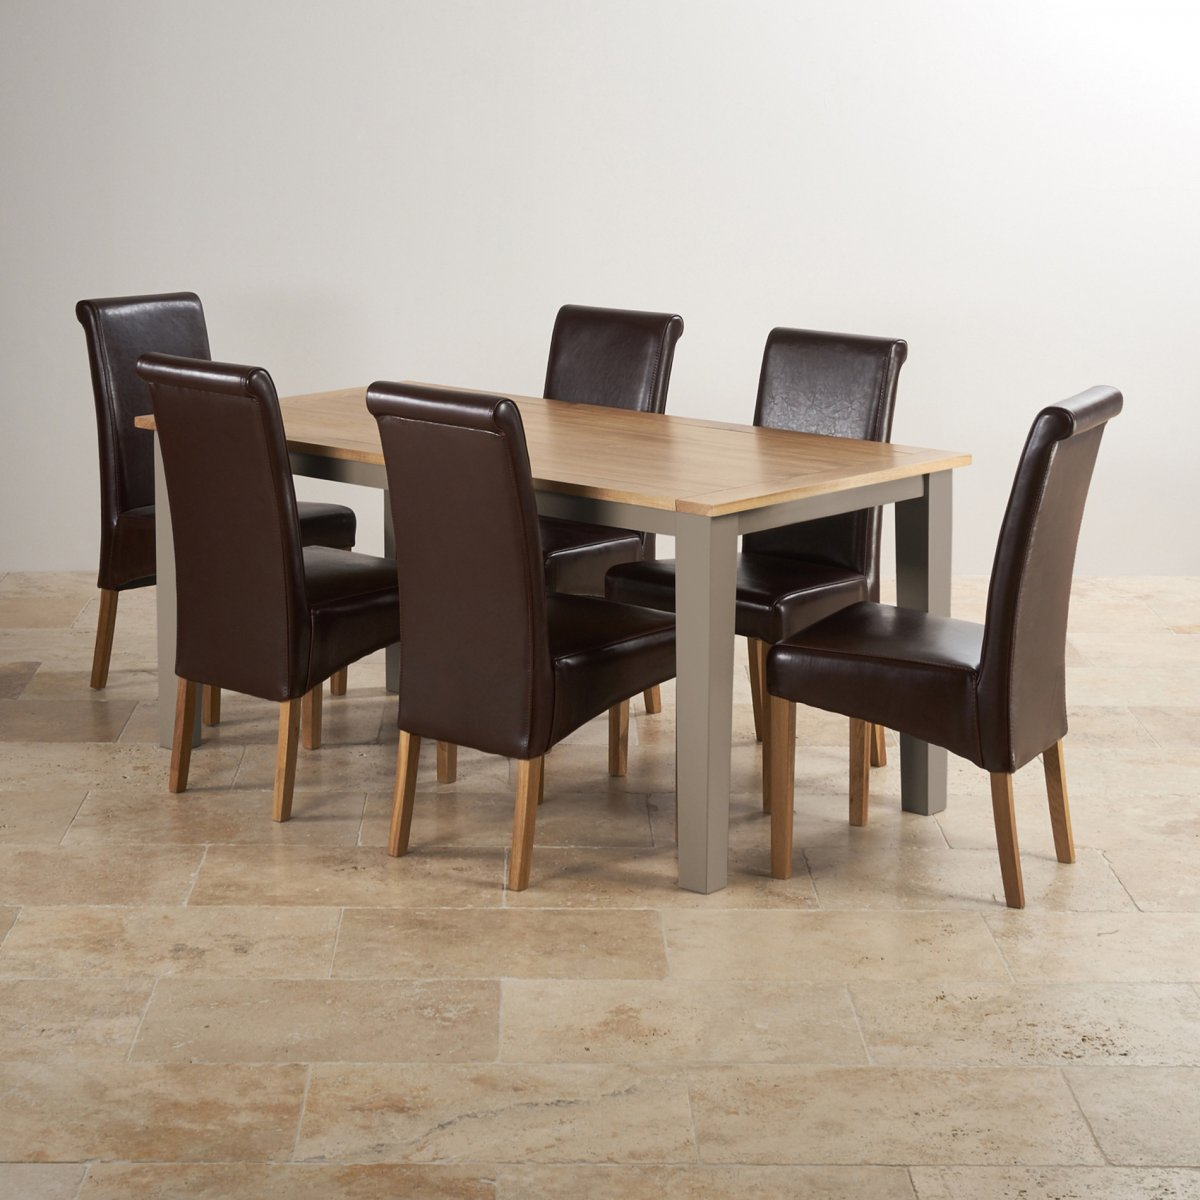 grey table and chairs resin wicker lowes st ives dining set in painted oak 43 6 leather